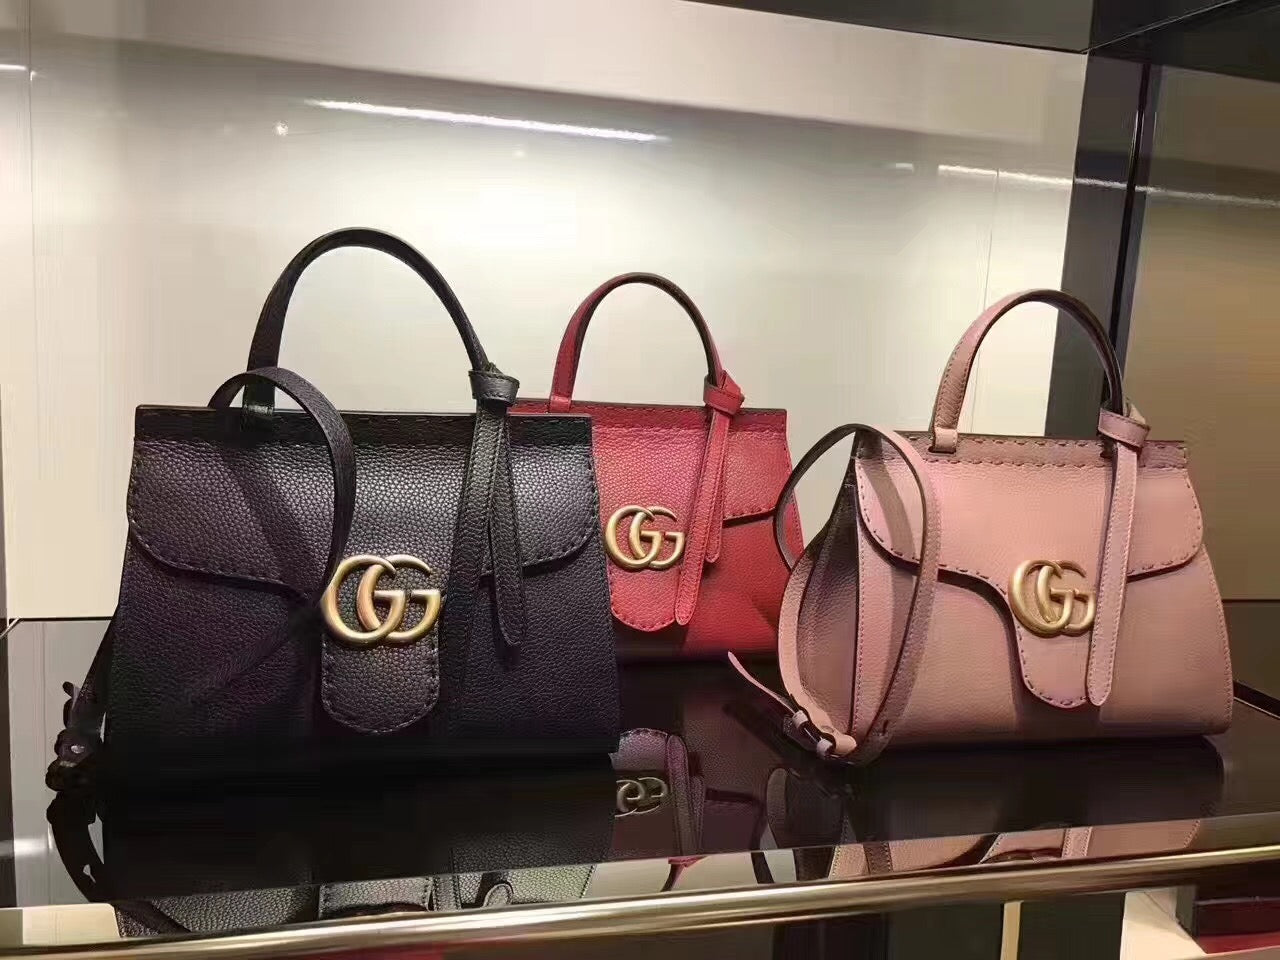 781a75dce2b4 Gucci Bag (Different Colors) – Look at my bags